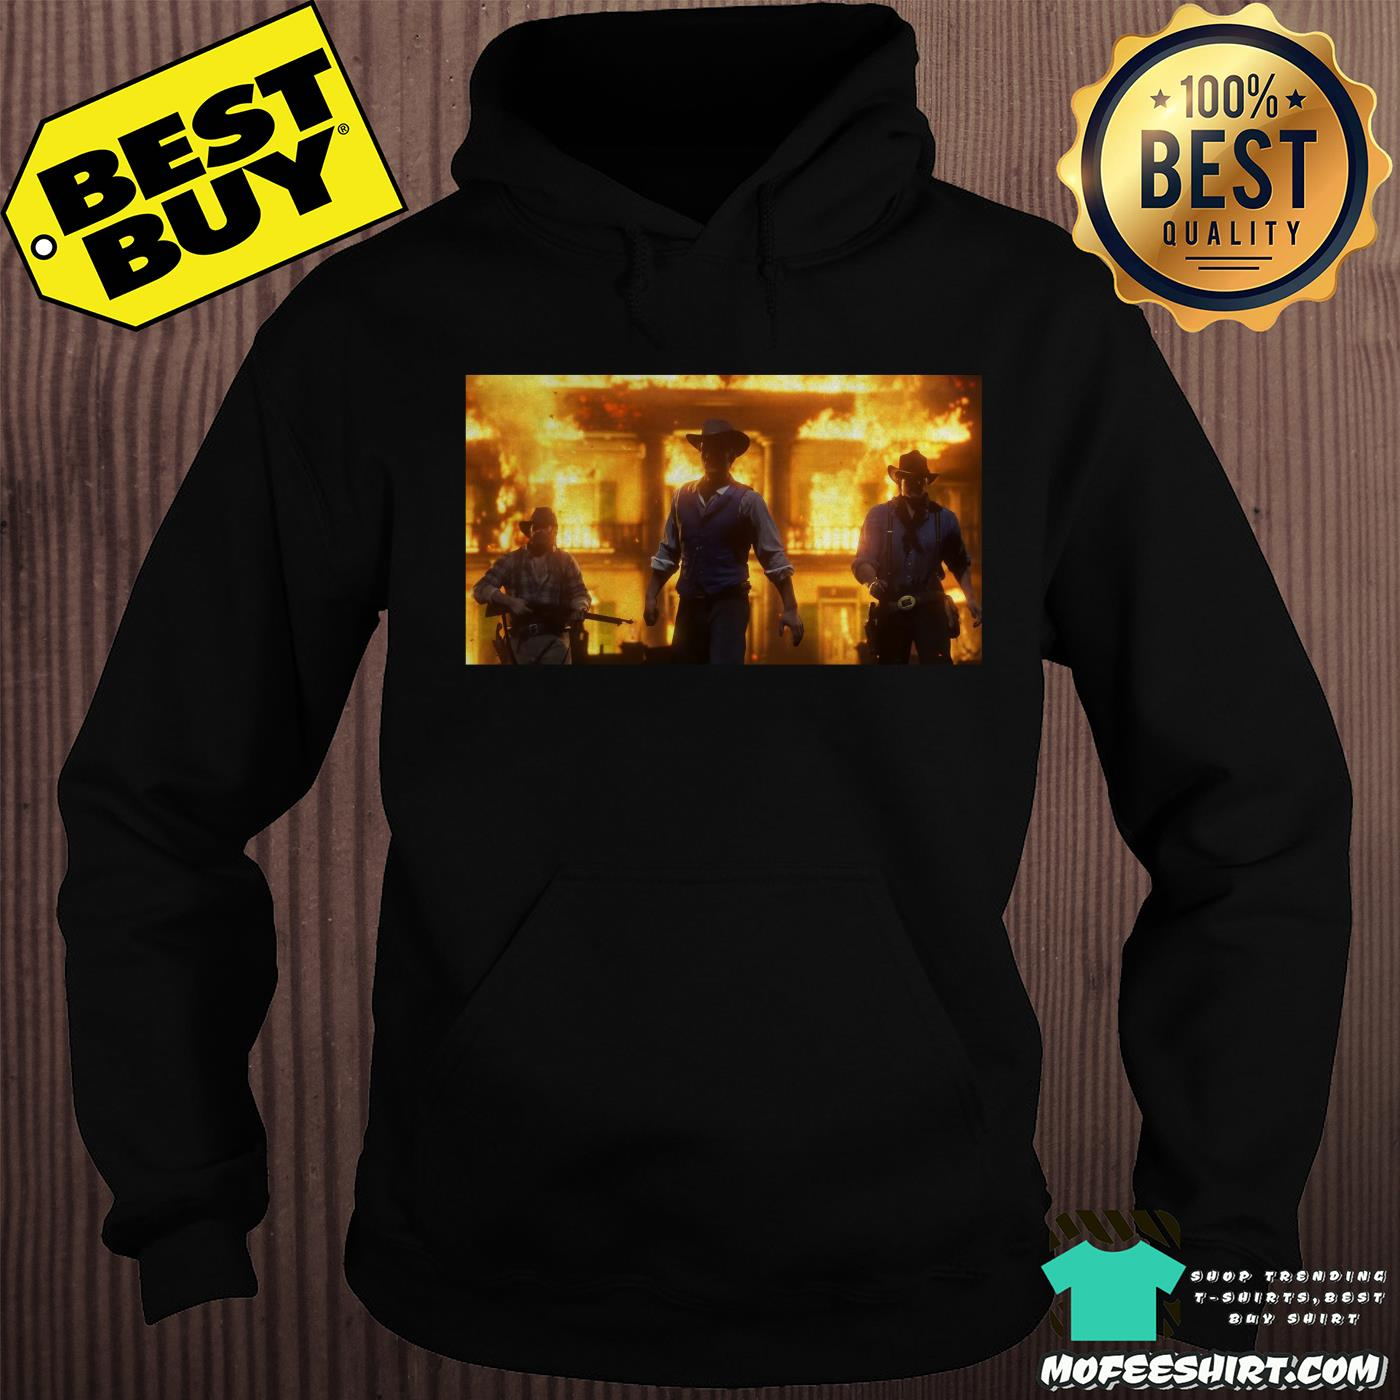 younter lil nas x old town road infant hoodie - Younter Lil NAS X Old Town Road Infant shirt